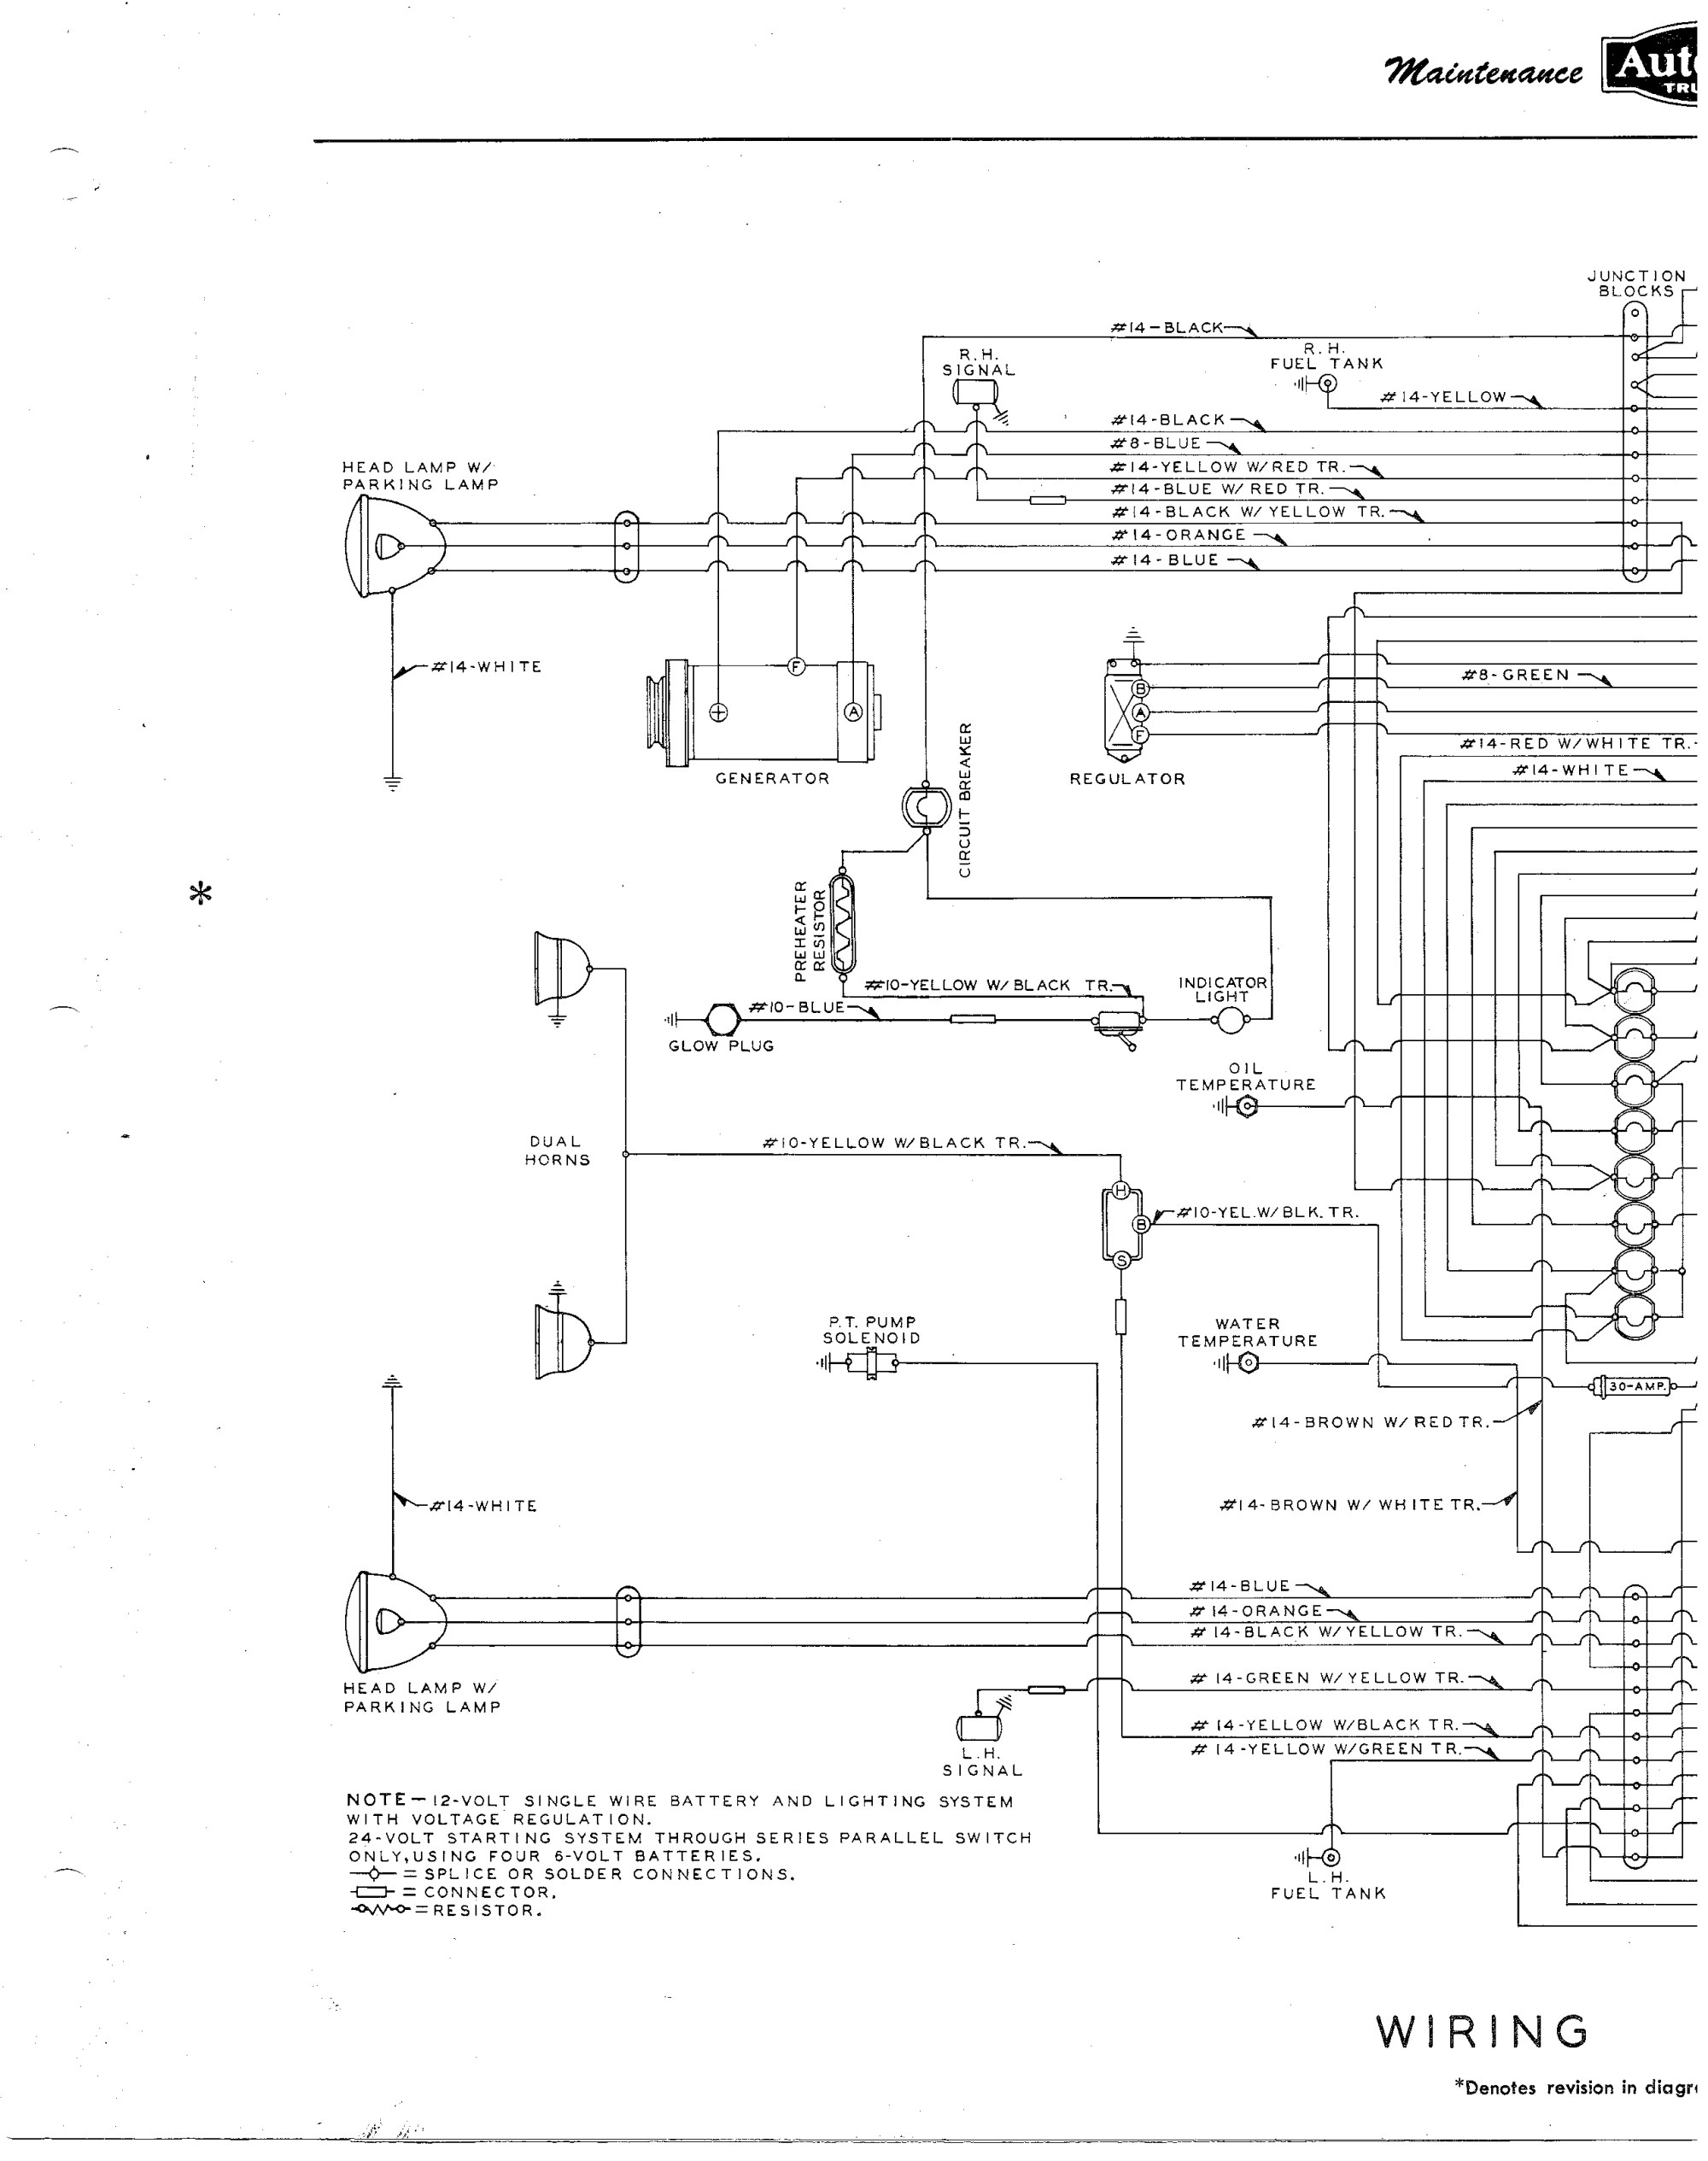 hight resolution of autocar wiring diagram new wiring diagram 2014 autocar wiring diagram